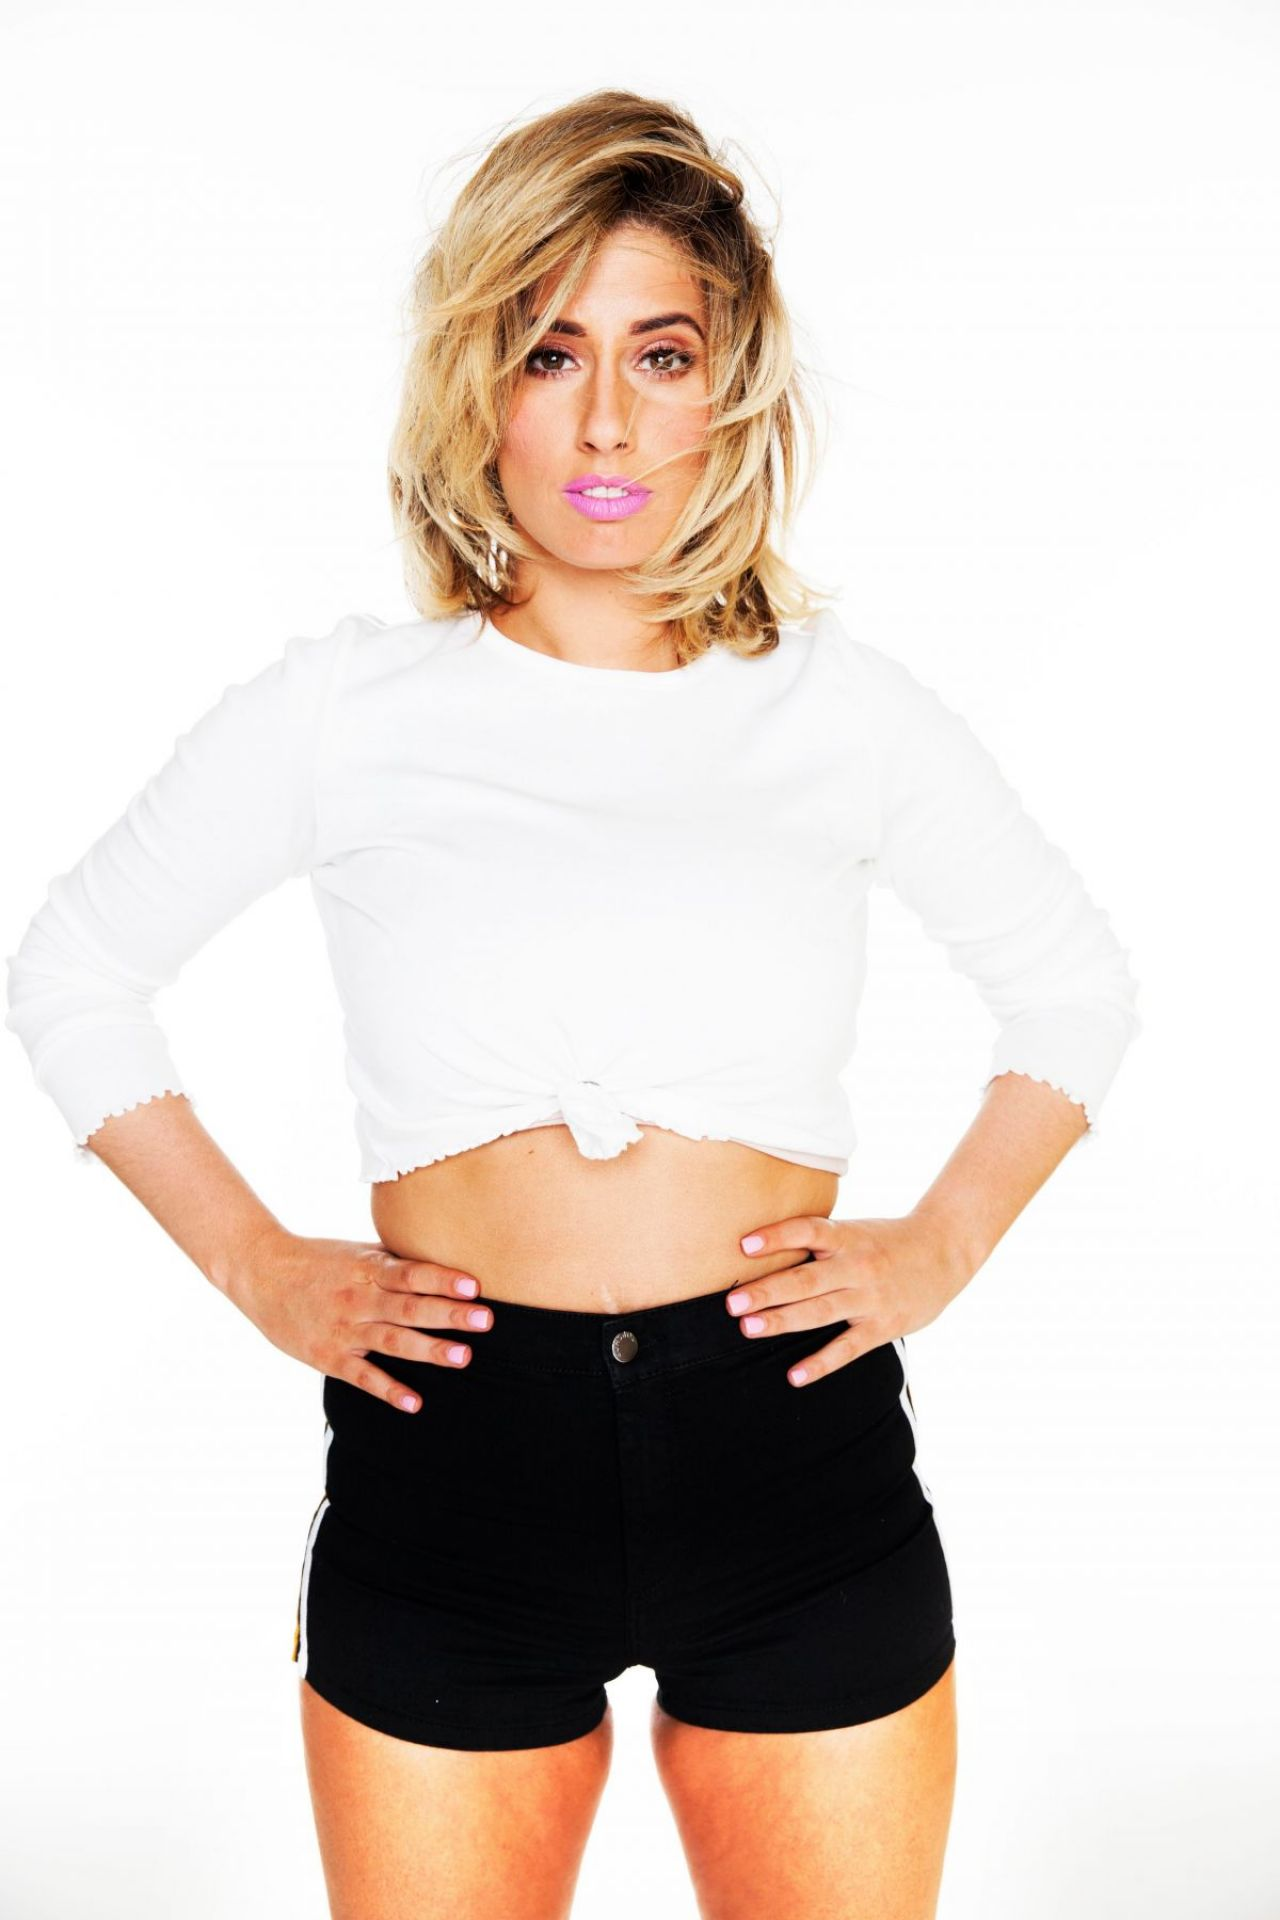 Stacey Solomon Photoshoo March 2018